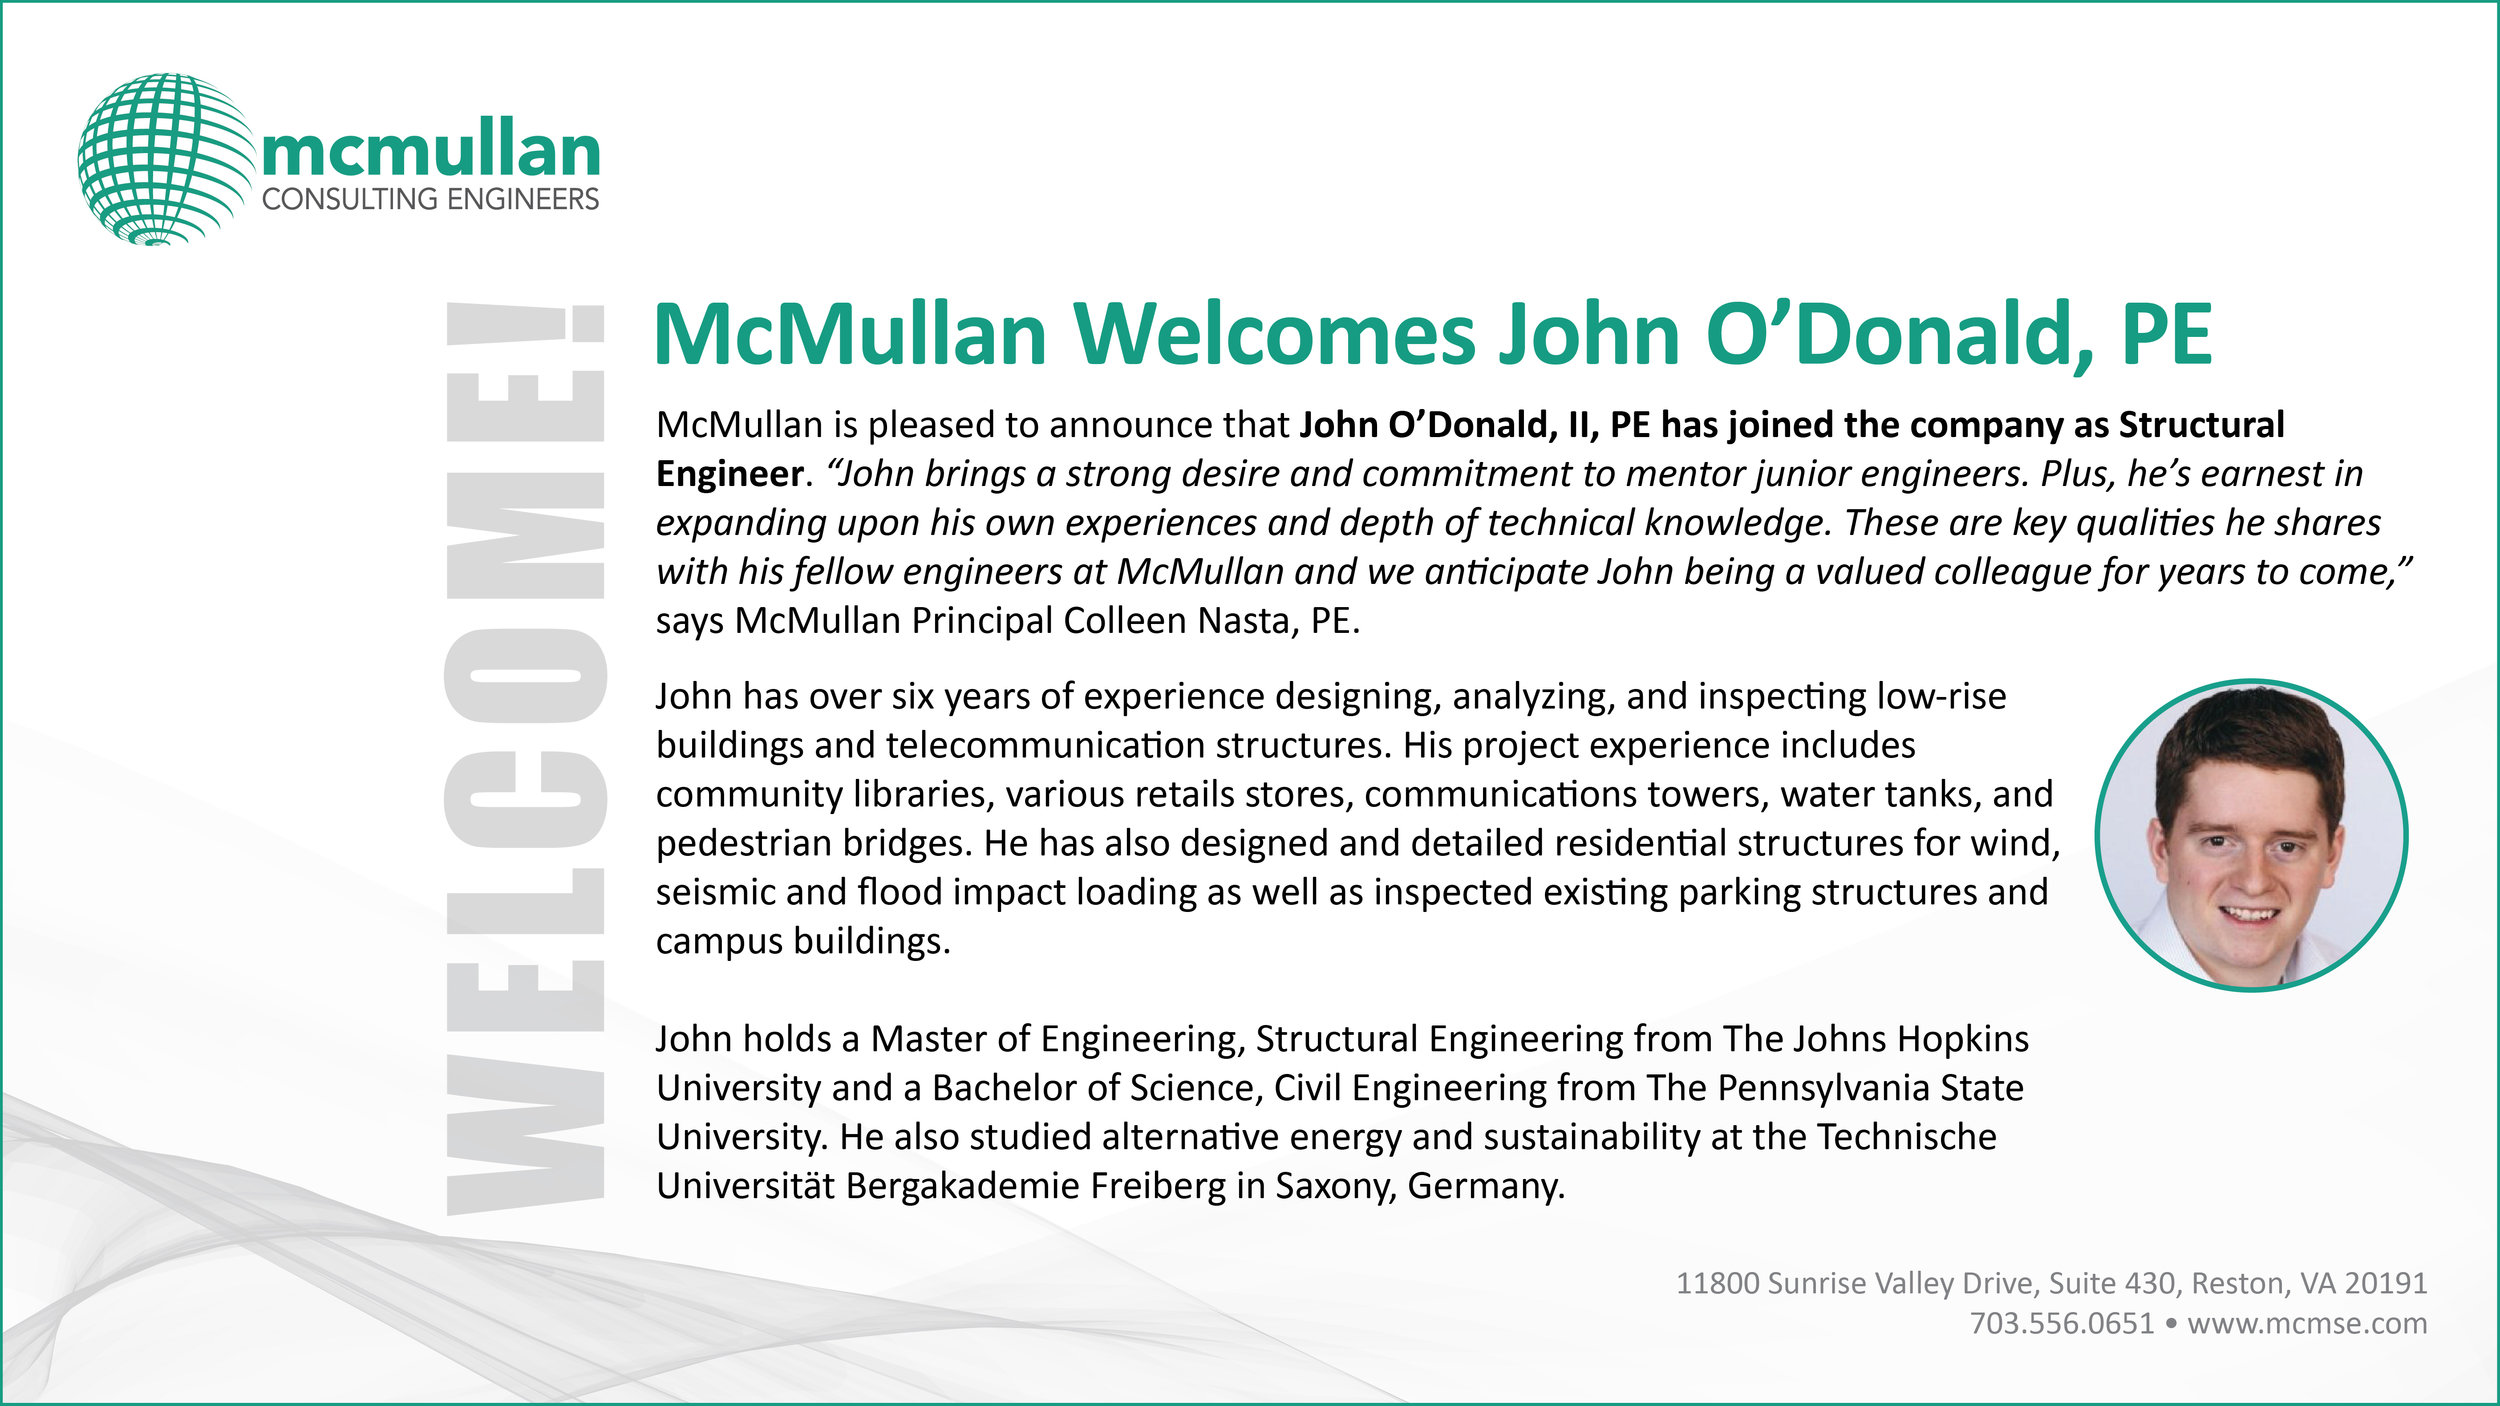 McMullanJohnWelcome_05Sep2019FINAL.jpg